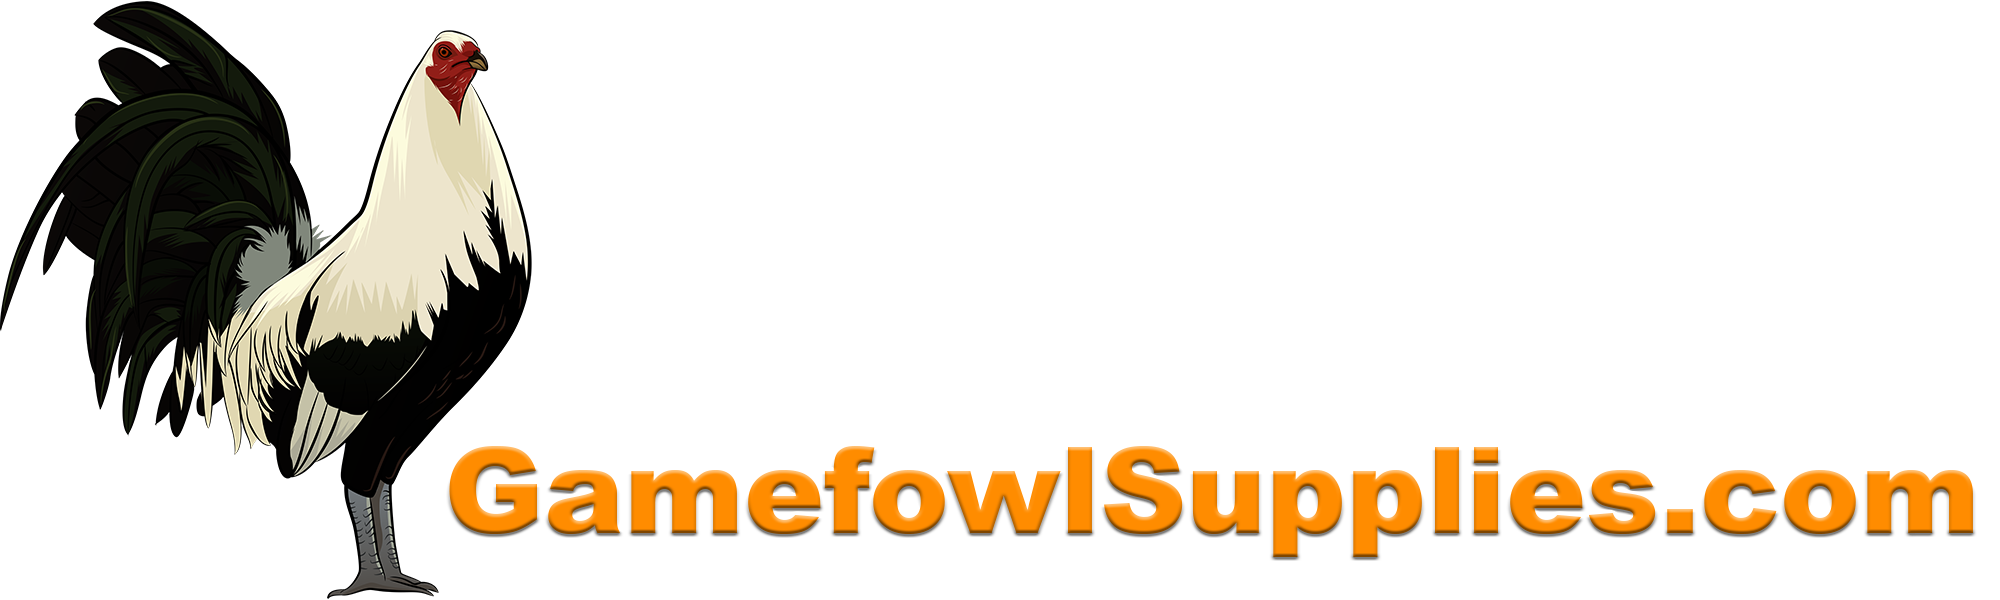 GamefowlSupplies.com